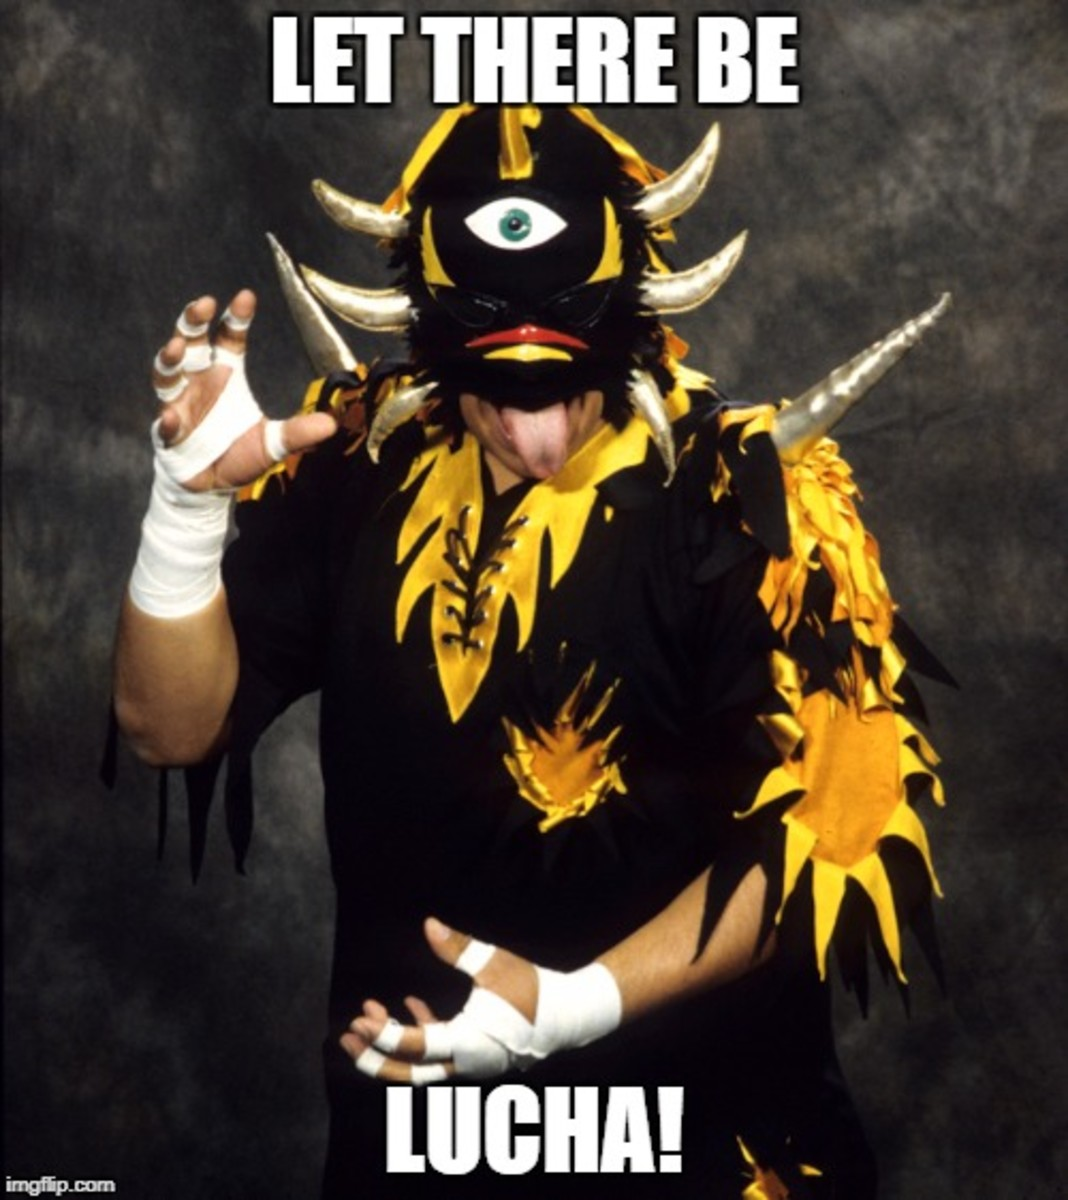 the-best-of-wcw-lucha-3